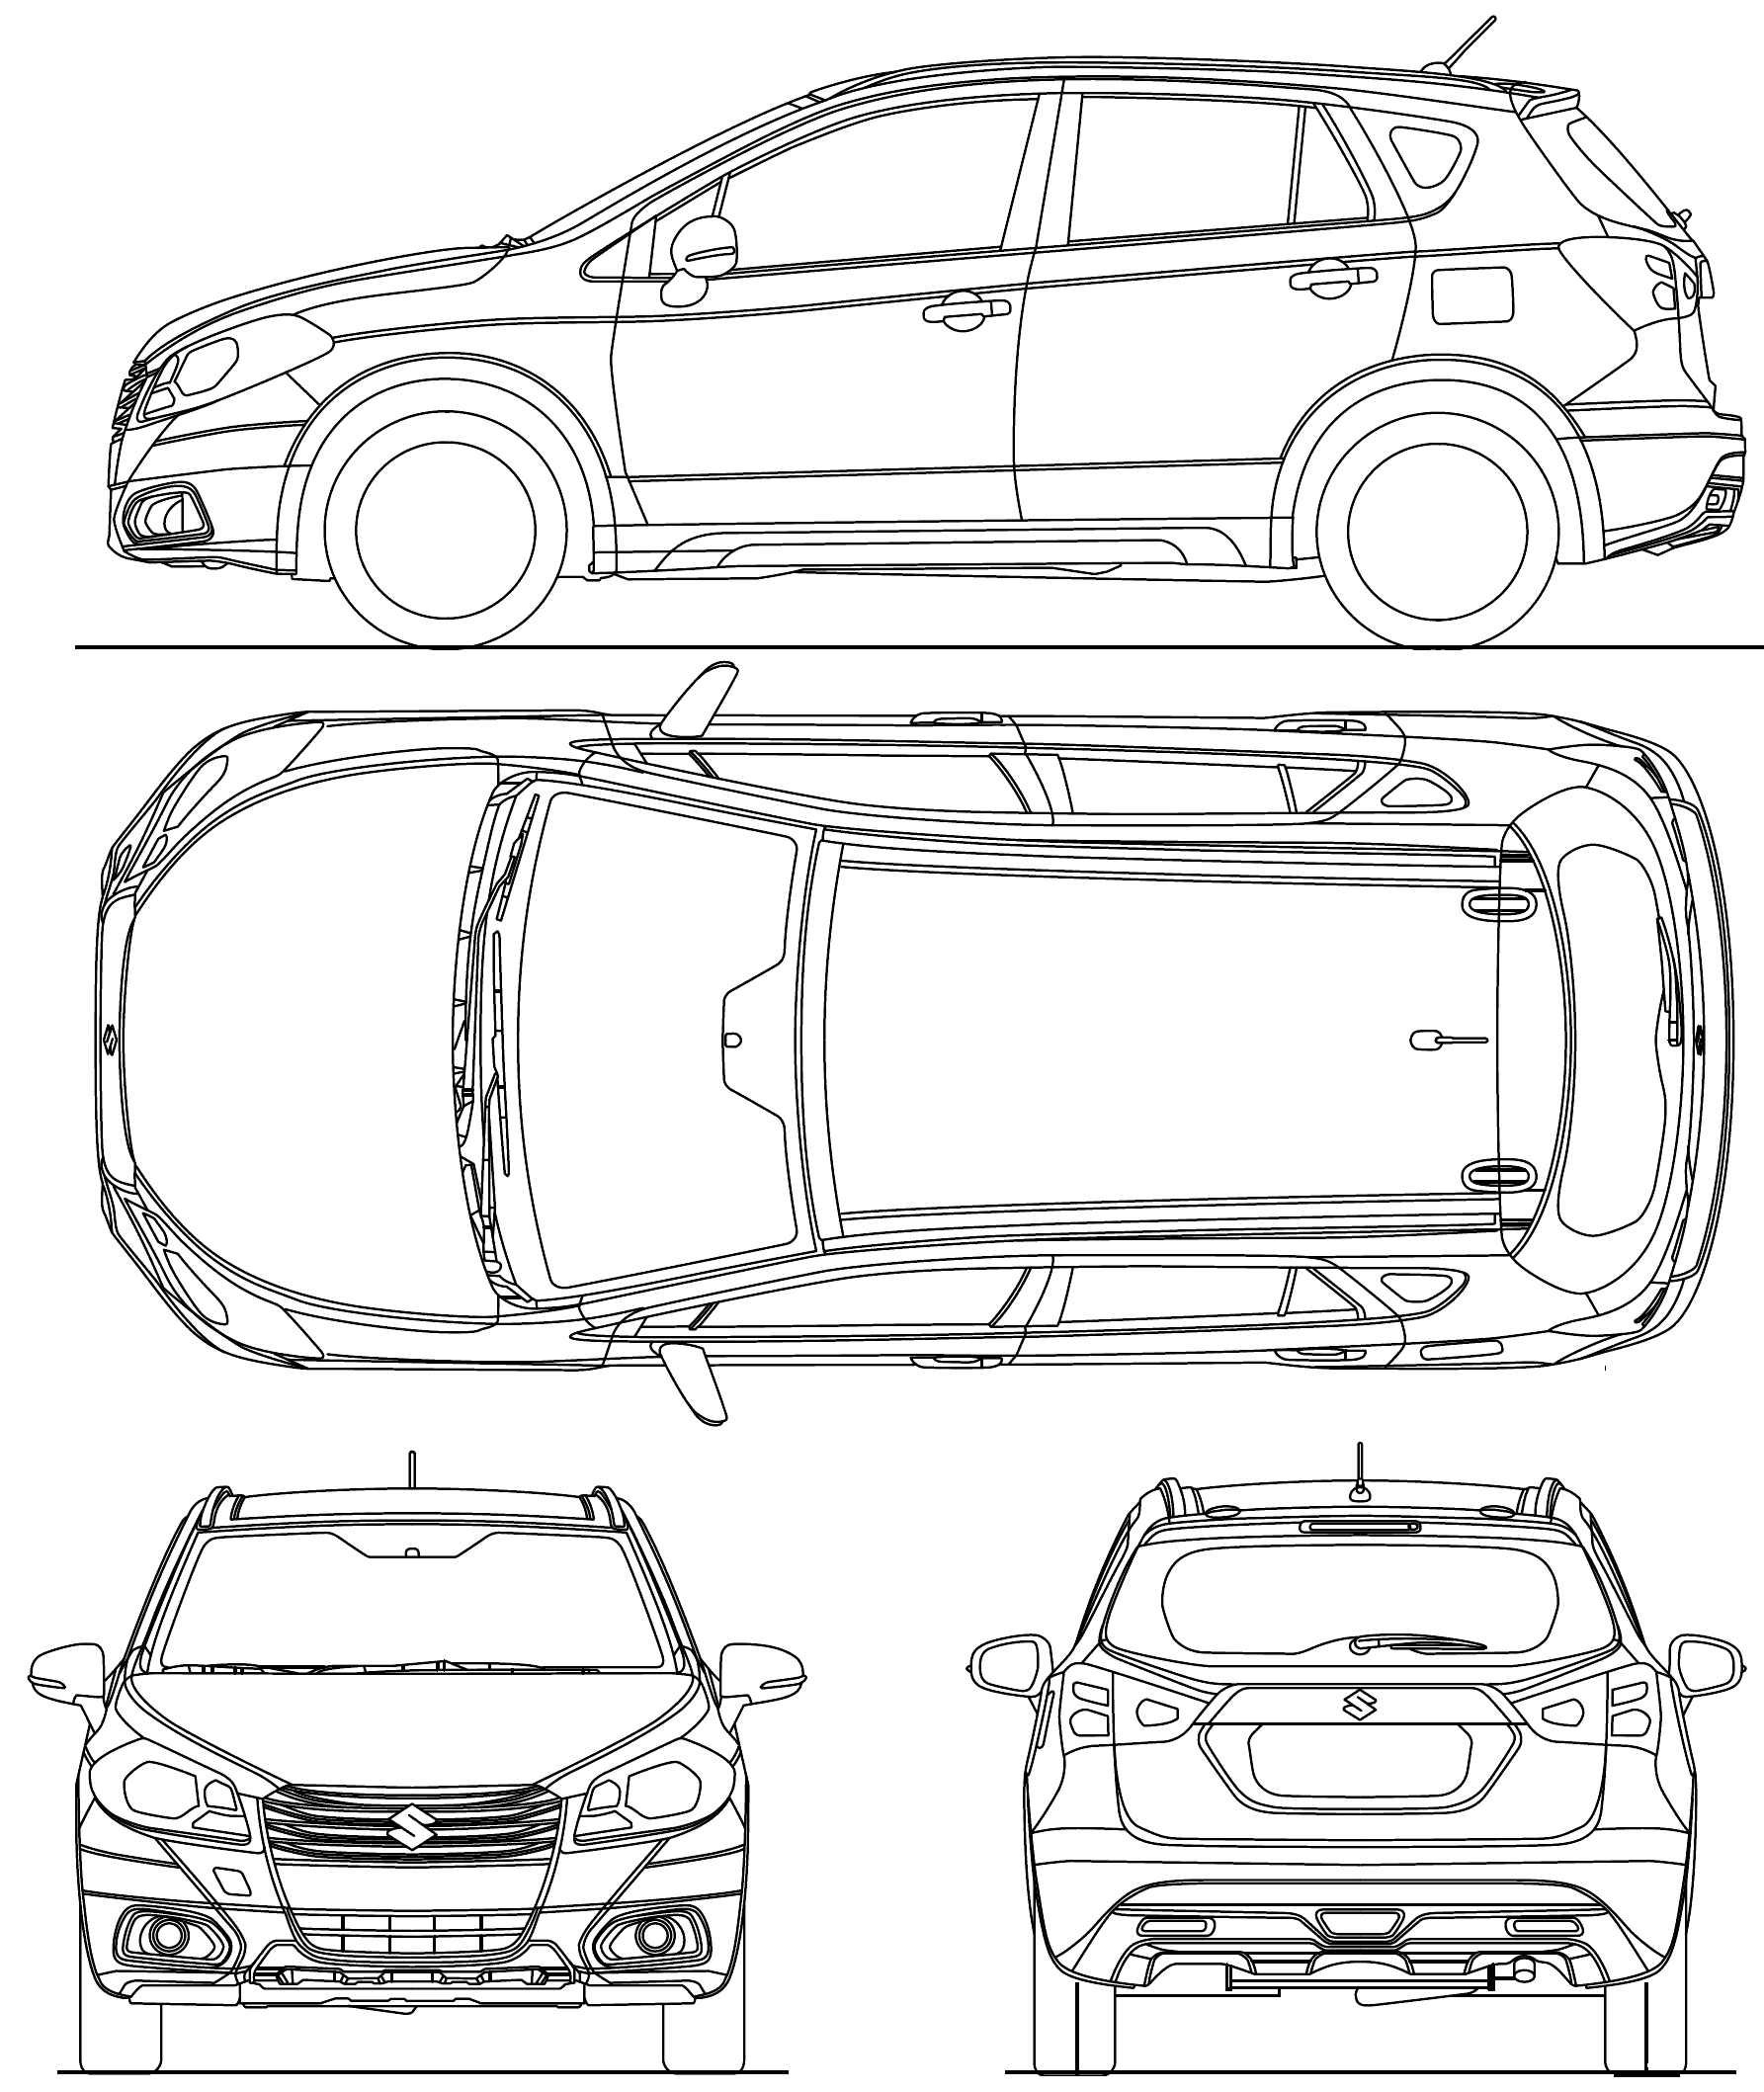 Suzuki SX4 S-Cross blueprint